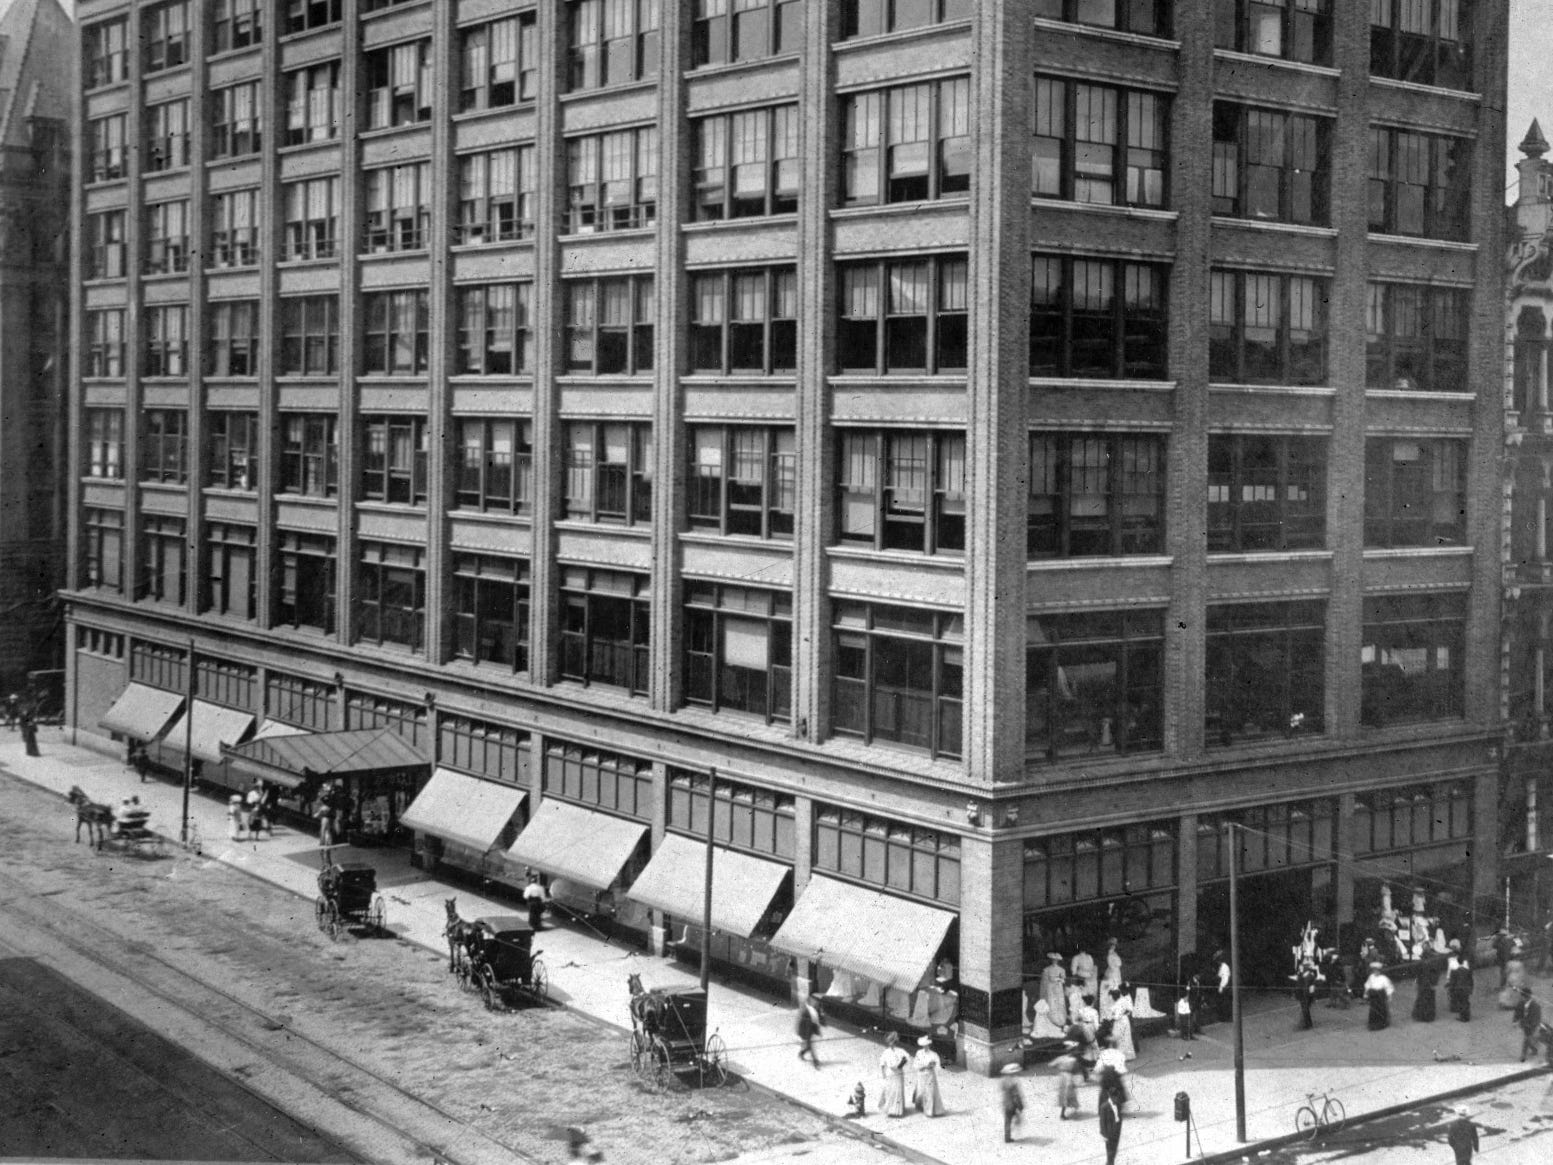 L.S. Ayres building, around 1900, looking SW at the corner of S. Meridian (on left) and Washington St (to the right).